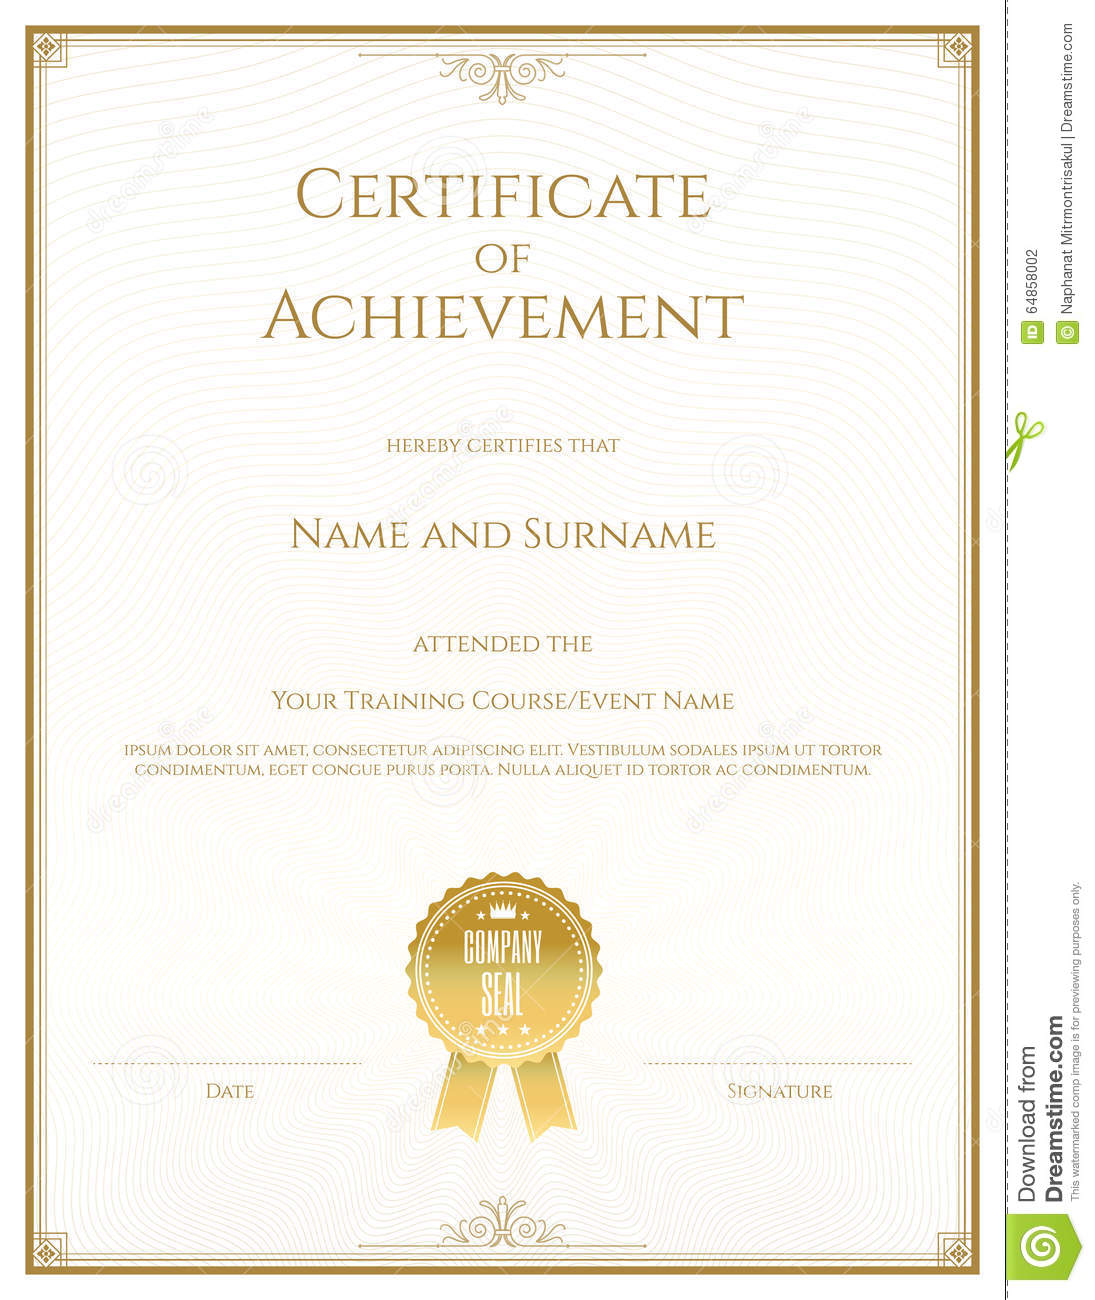 Create A Certificate Of Recognition In Microsoft Word Share Flipboard Email  Print Computer U2026 Download A Word Certificate Template Online.  Graduation Certificate Template Word